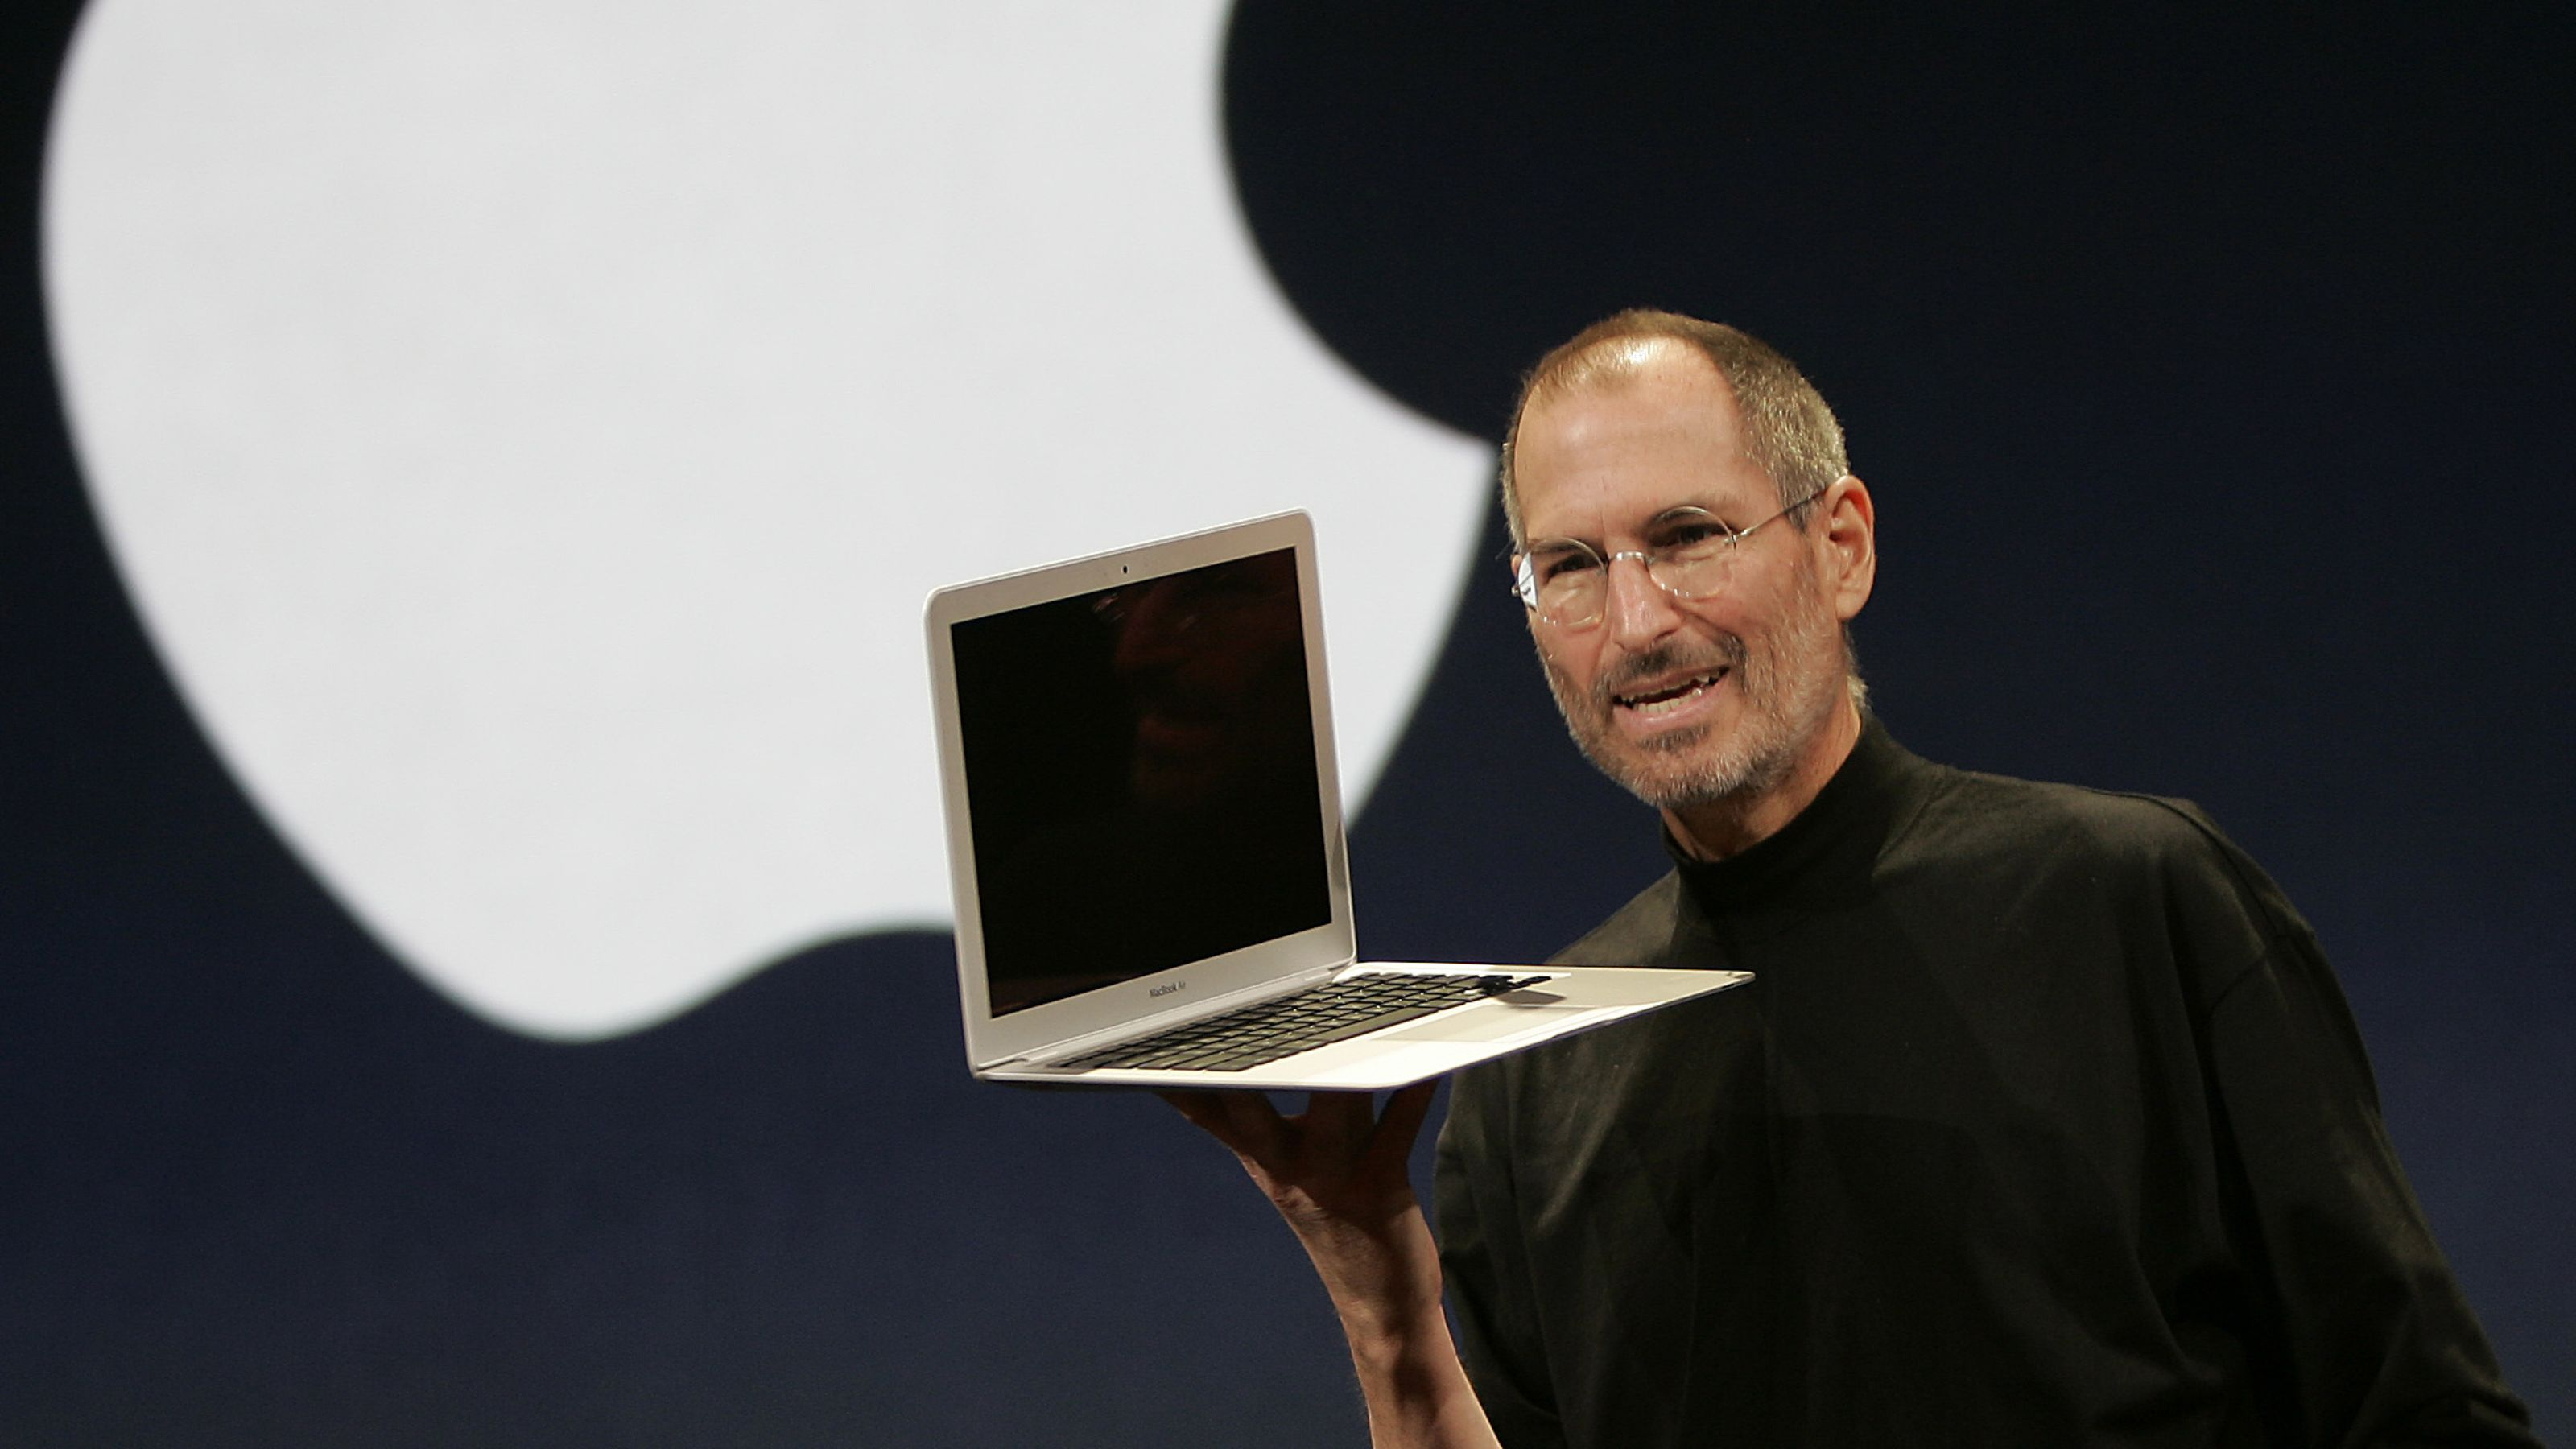 Steve Jobs holding a MacBook Air in one hand